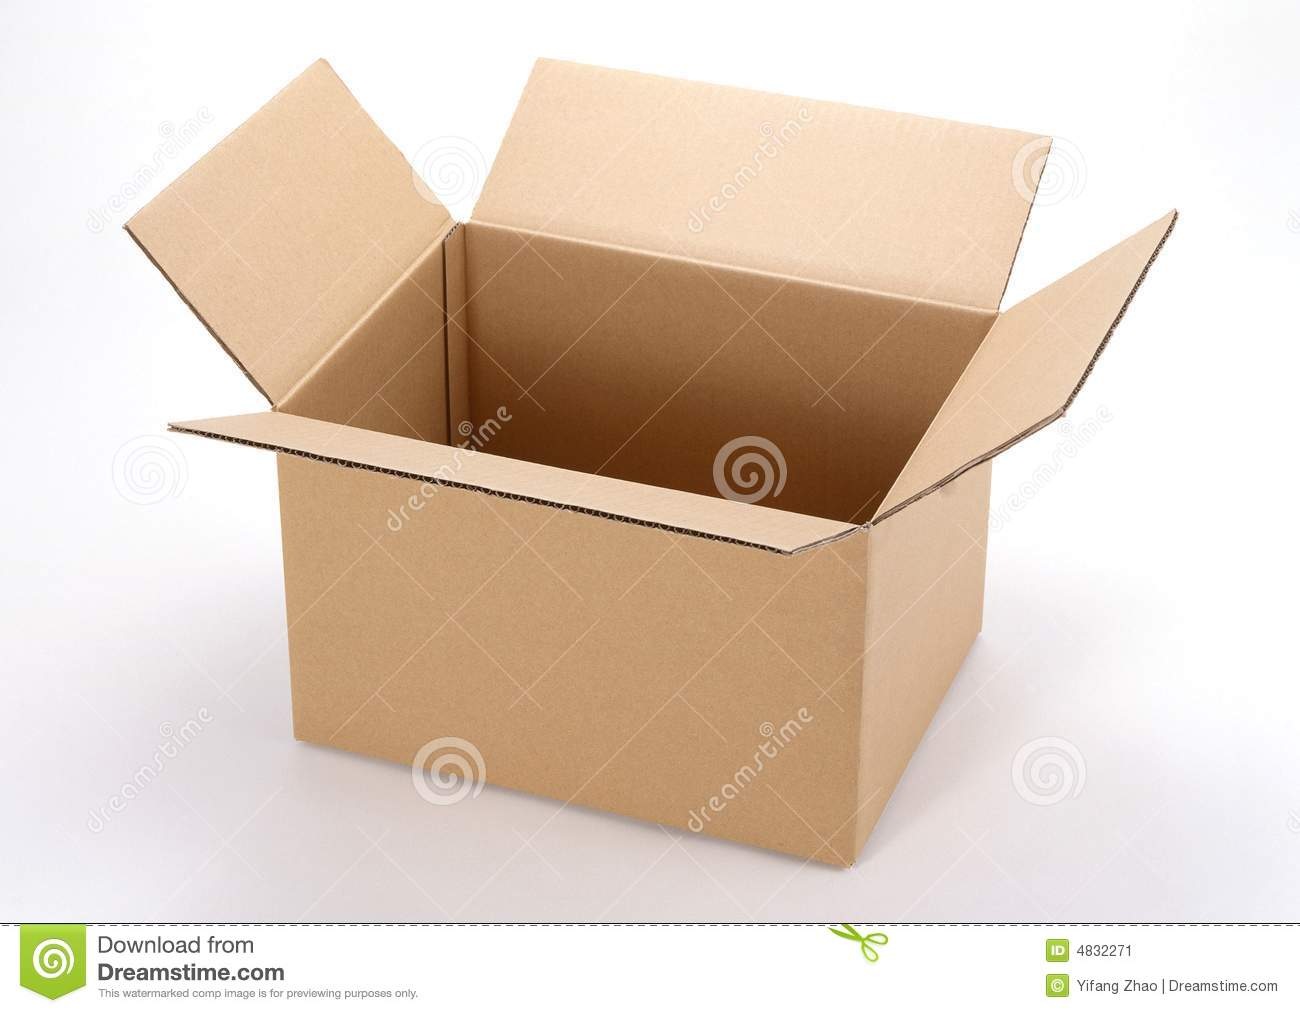 Opened cardboard boxes